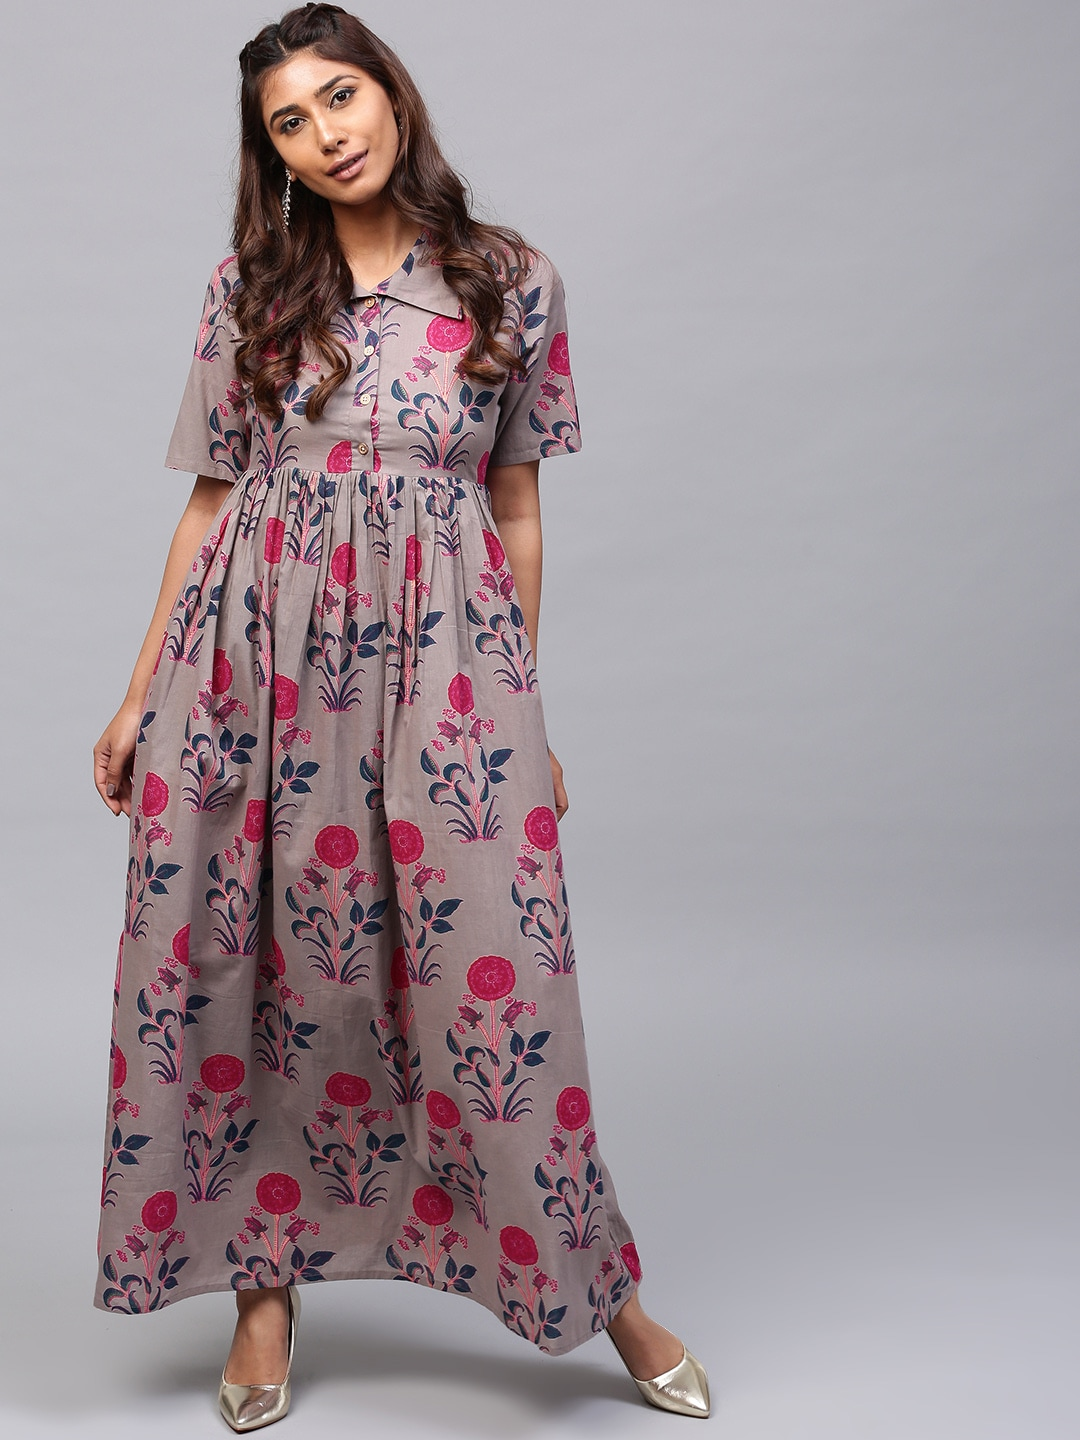 f6044e4a5b8 Long Dresses - Buy Maxi Dresses for Women Online in India - Upto 70% OFF